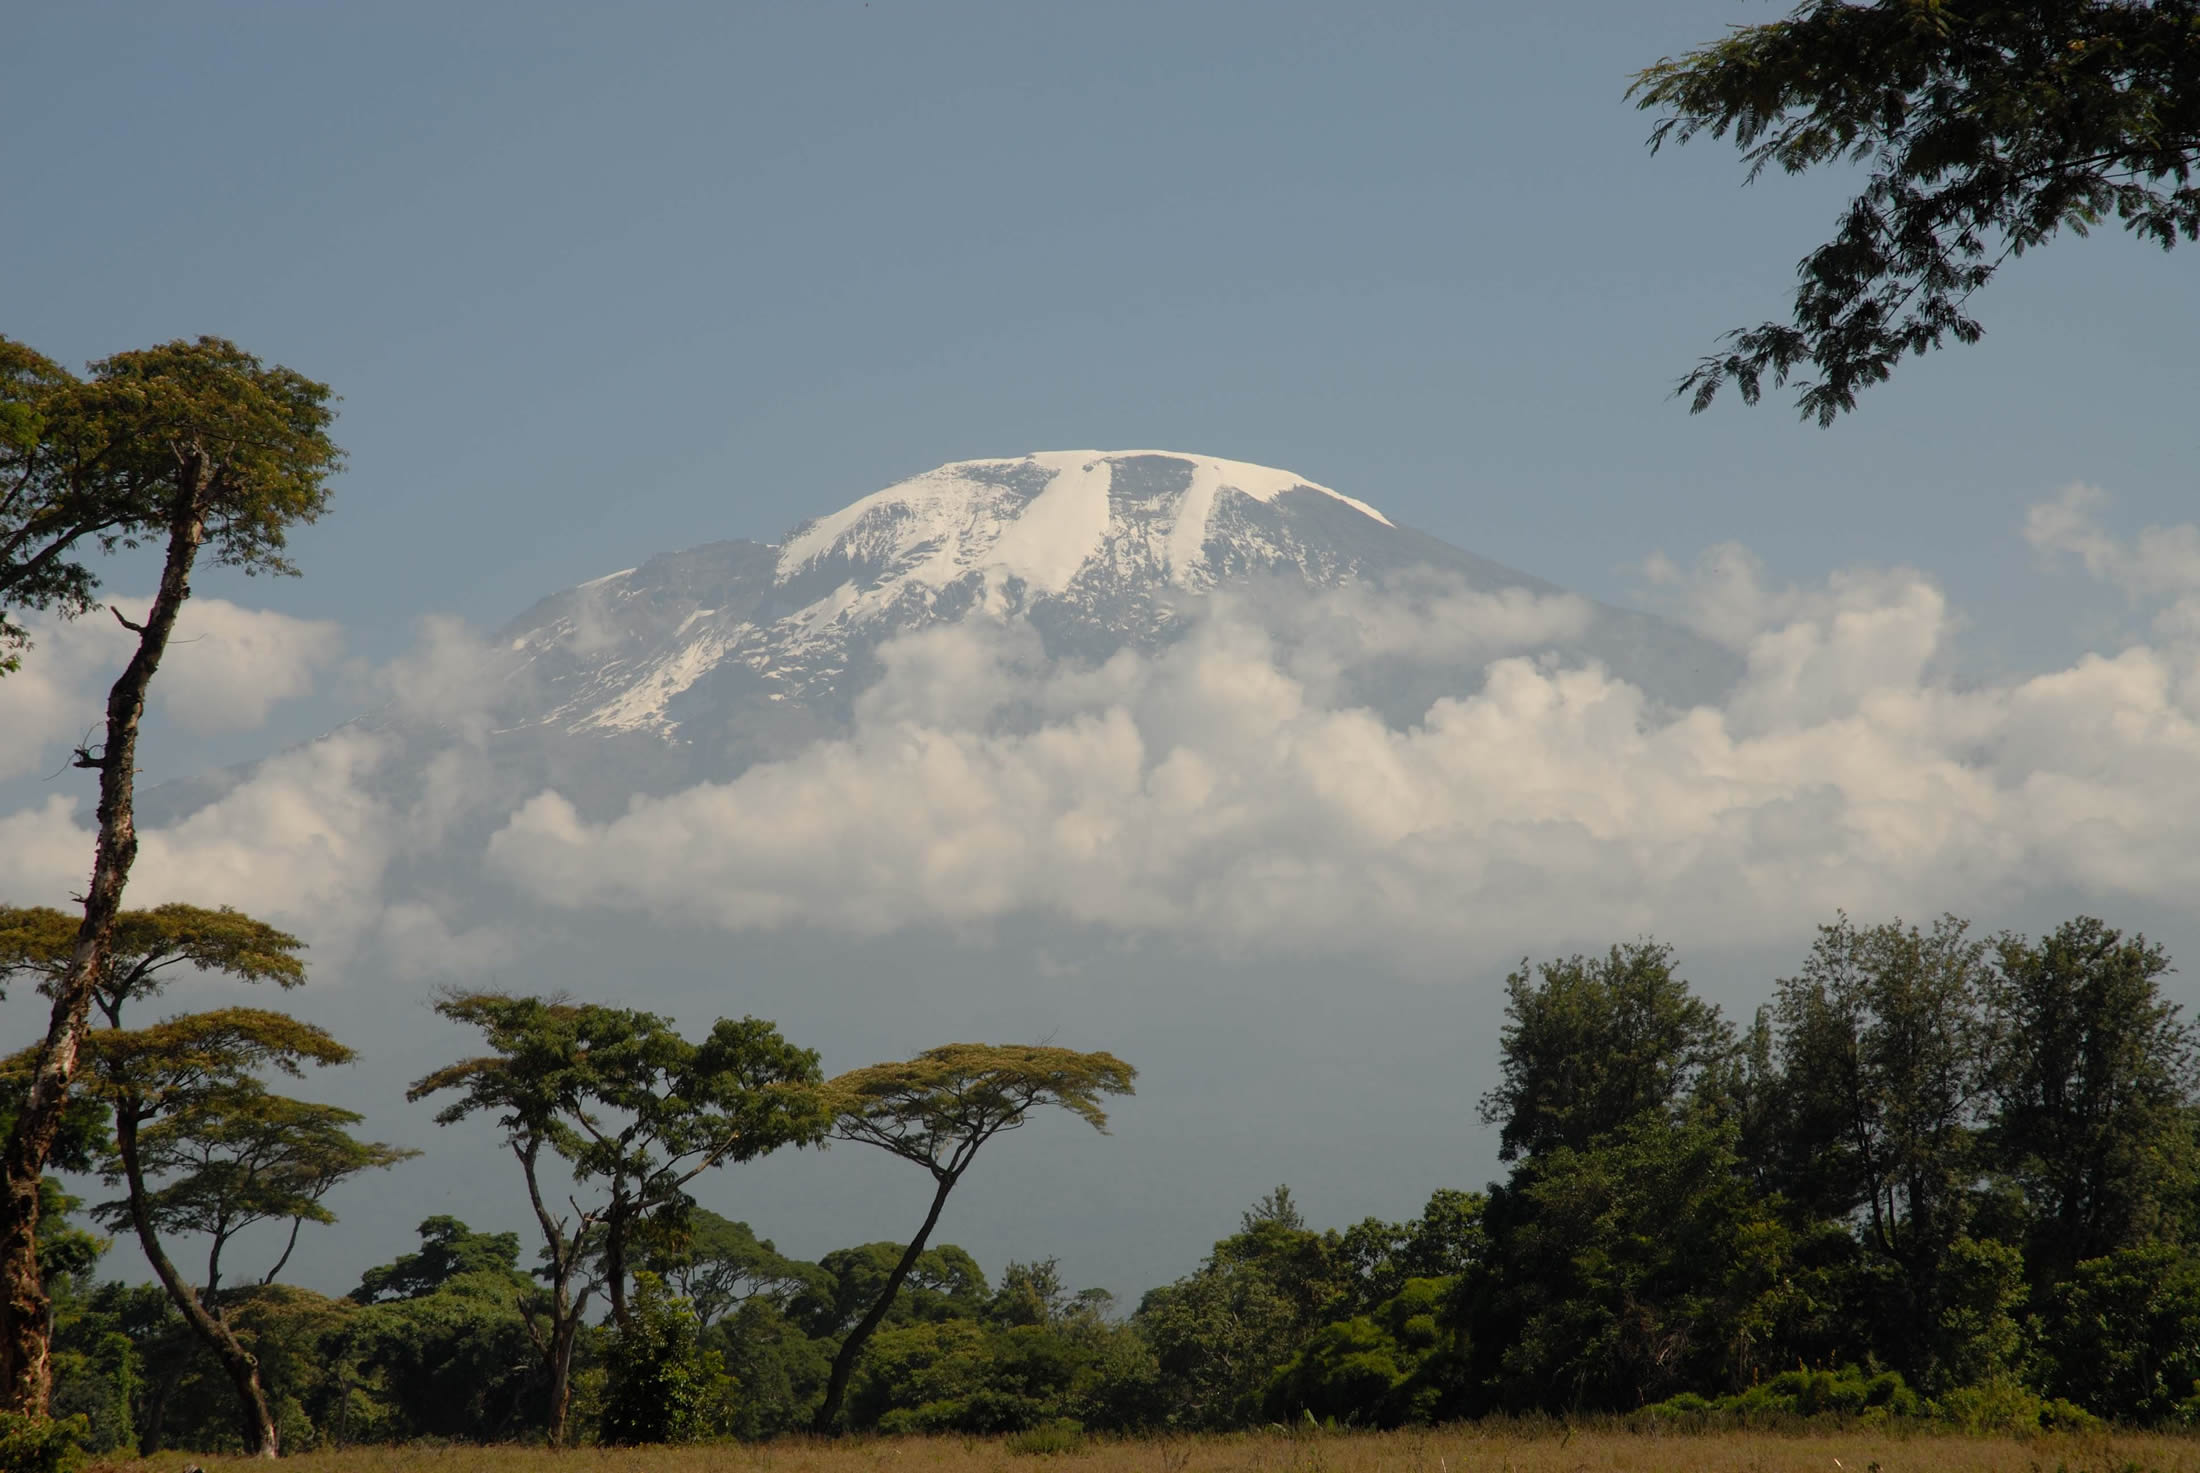 Kilimanjaro with Snow on top